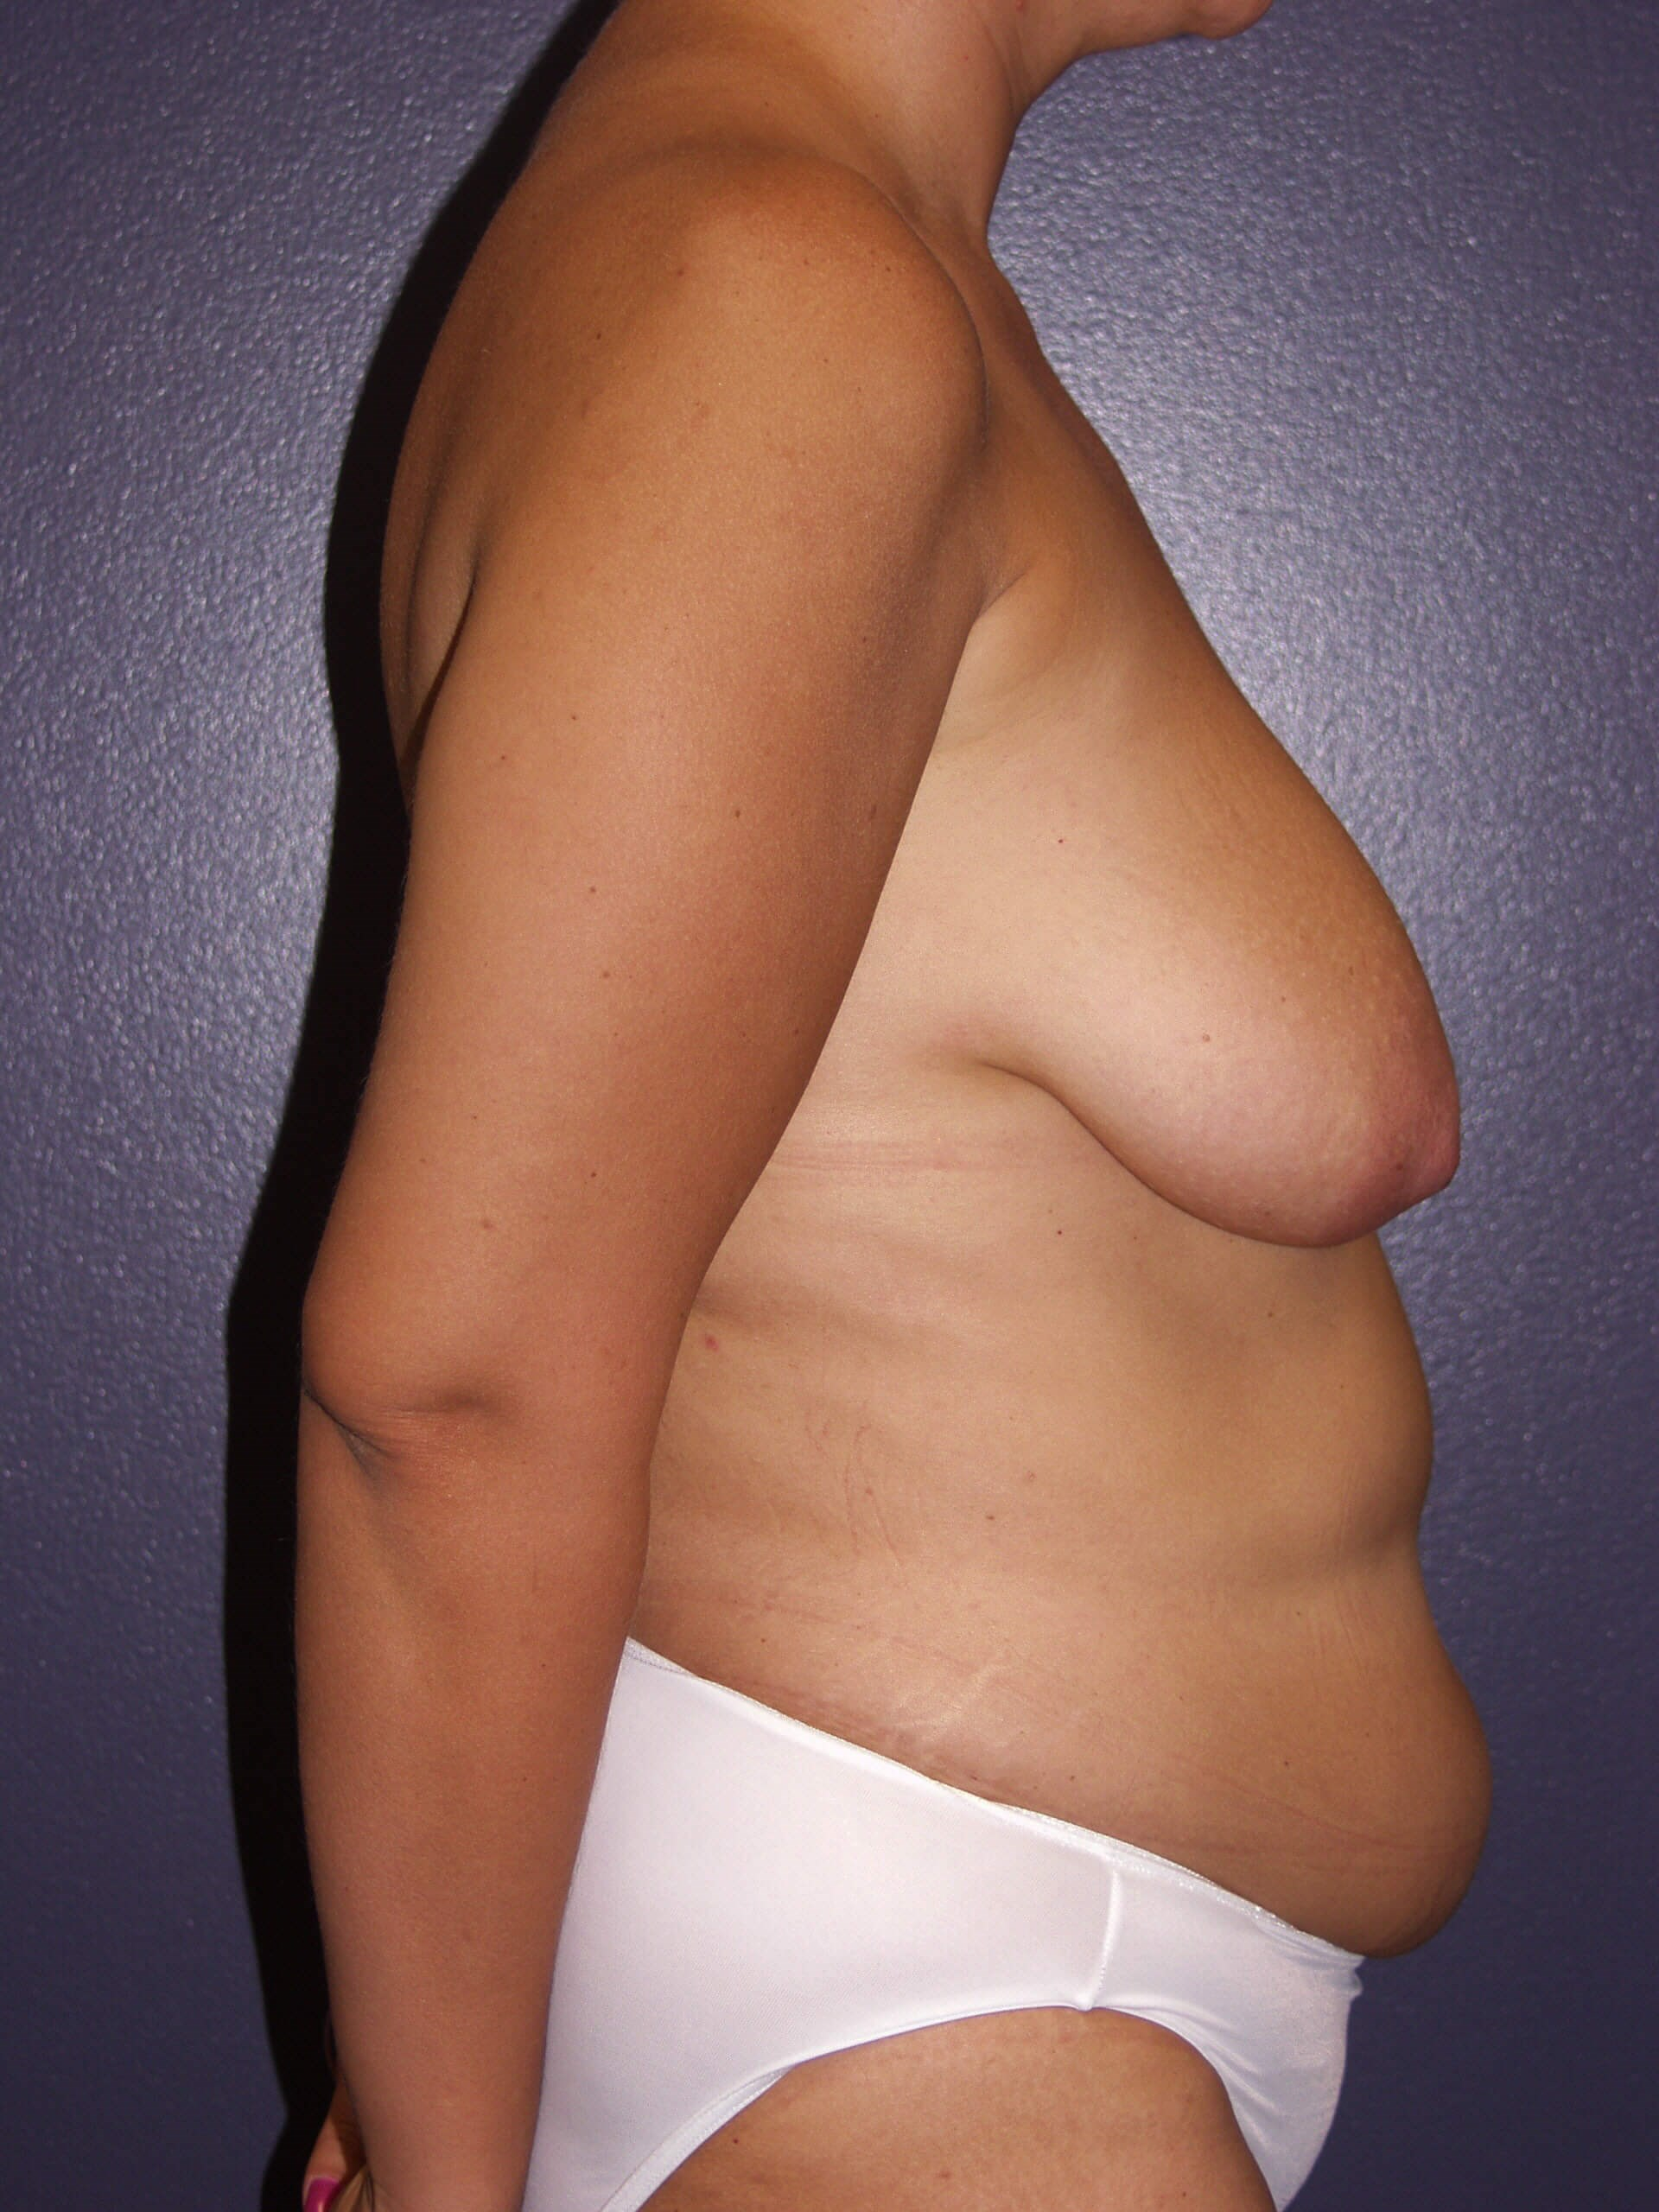 Mastopexy and Liposuction Before